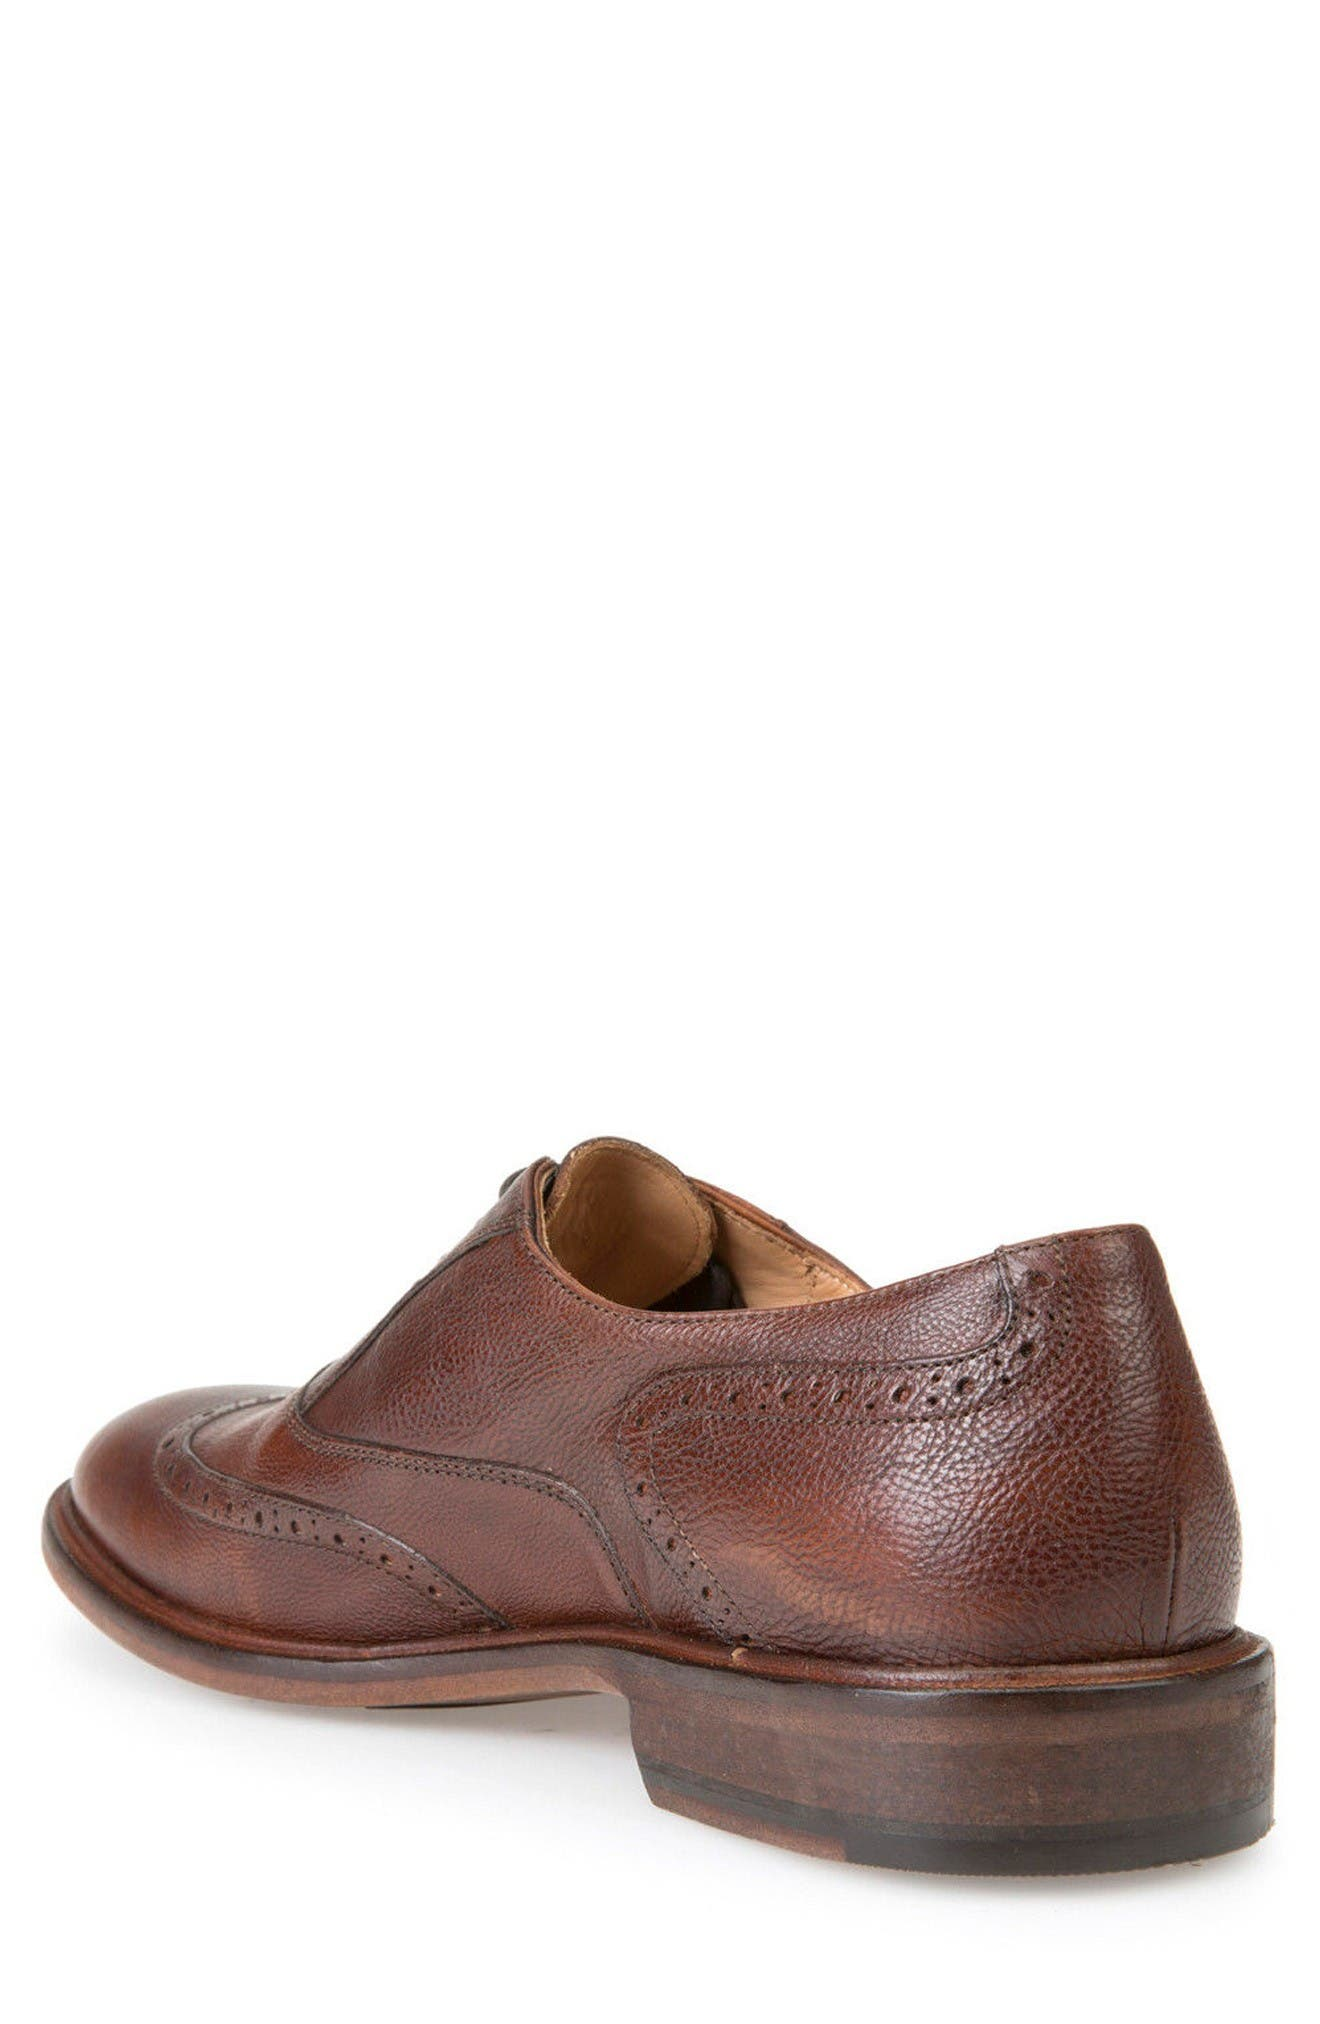 Guildford 9 Wingtip,                             Alternate thumbnail 2, color,                             Brown Leather